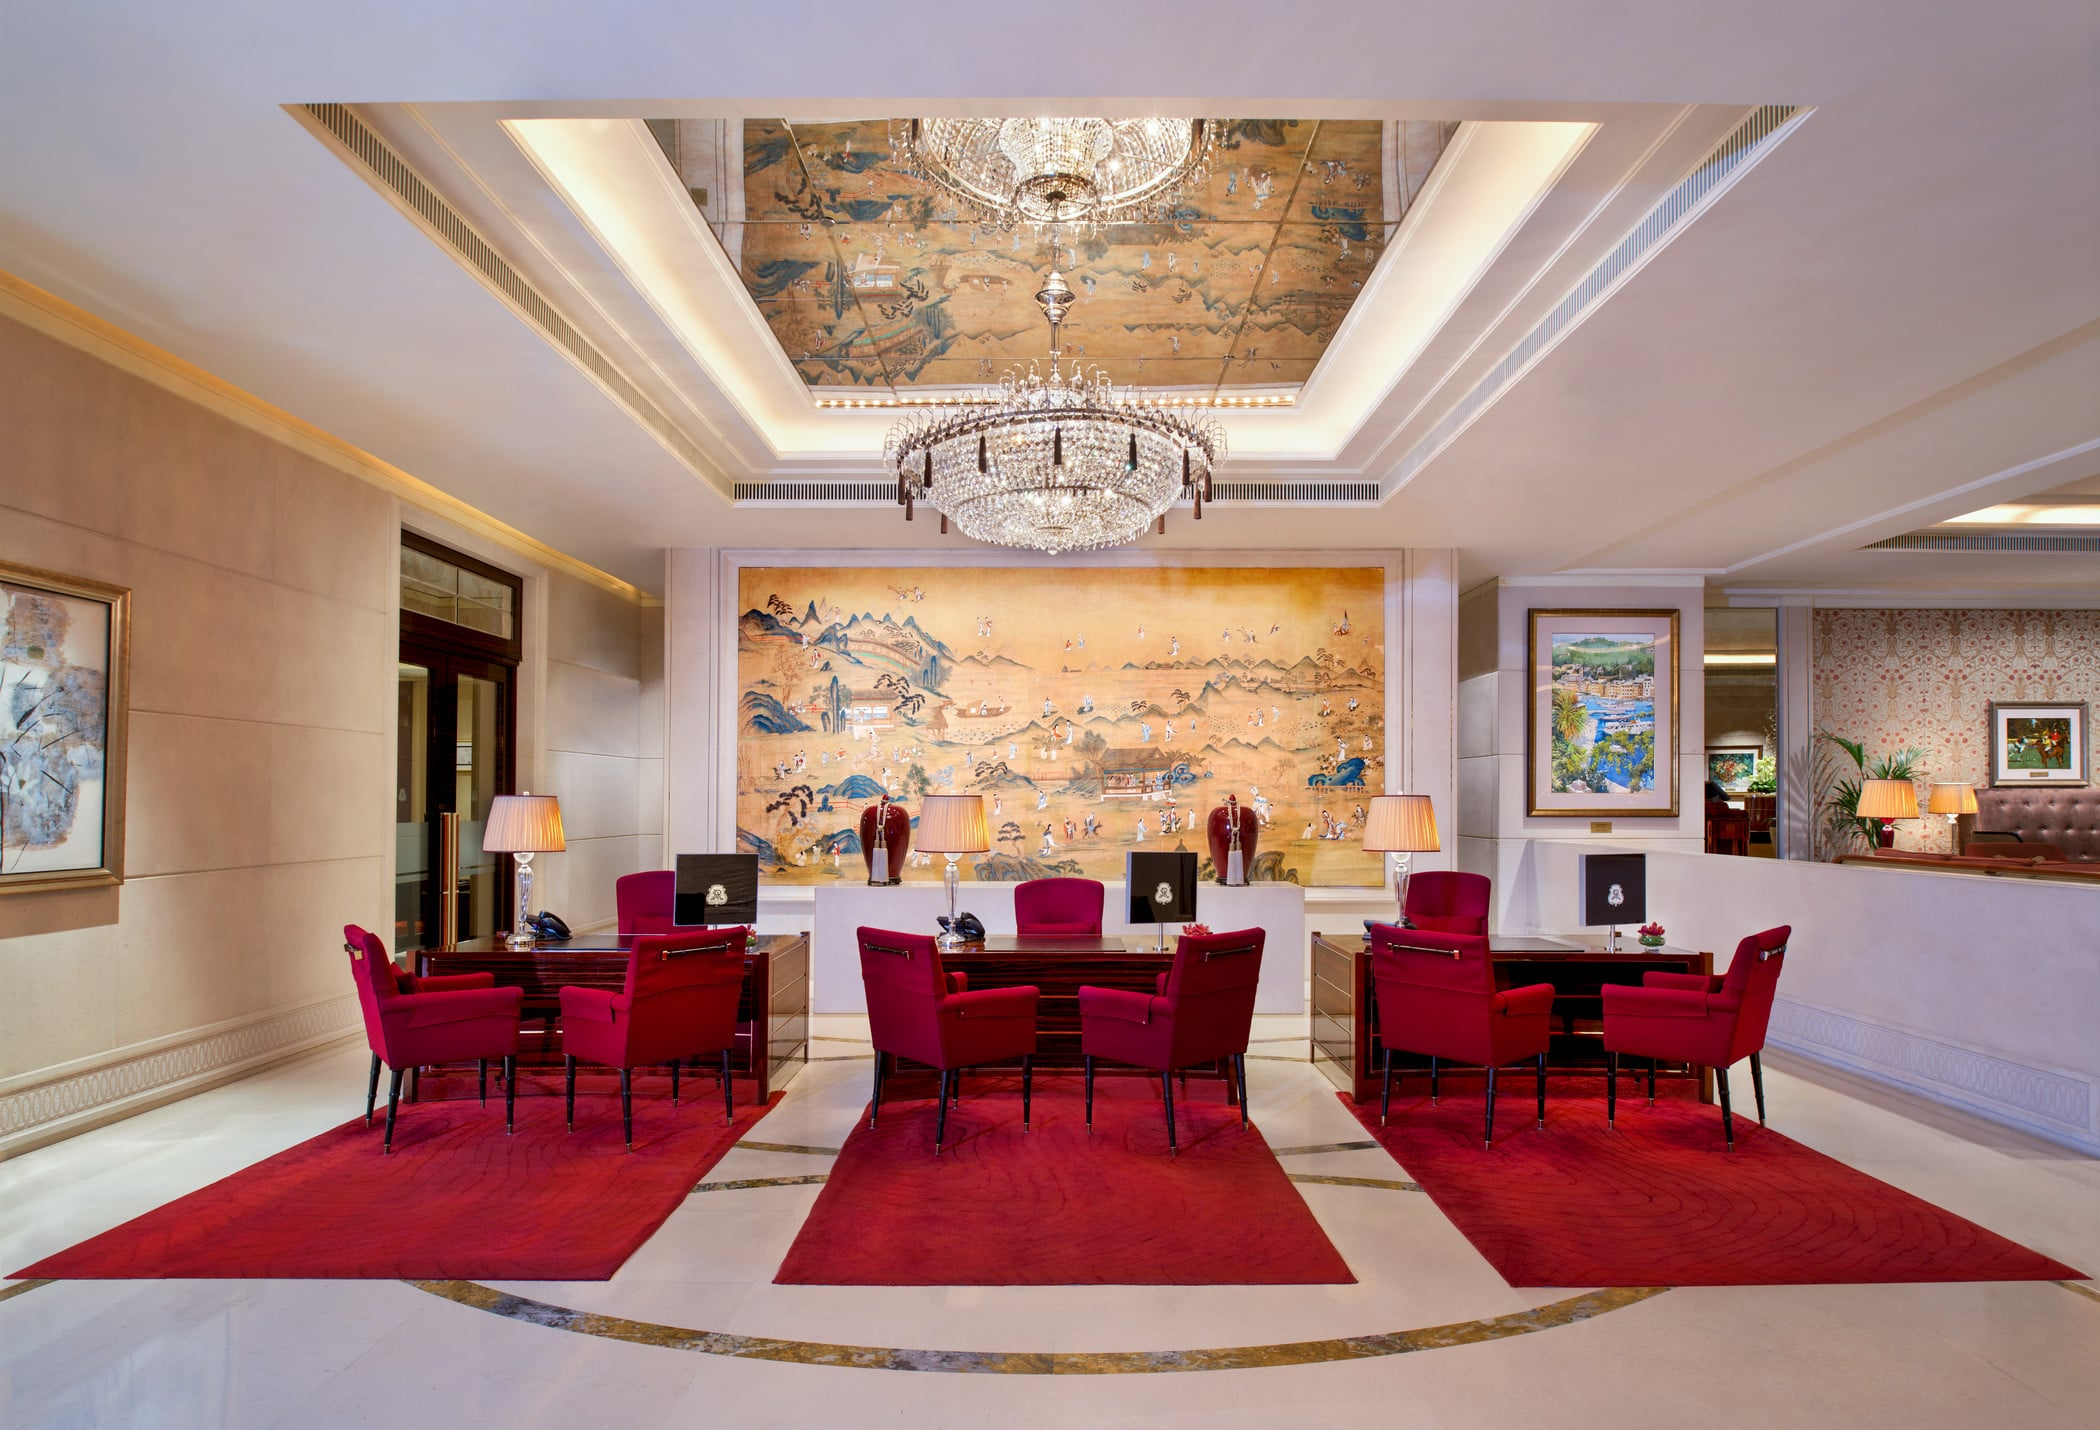 The lobby at St. Regis has deep red velvet chairs and rugs in addition to a gold Asian painting and crystal chandelier.